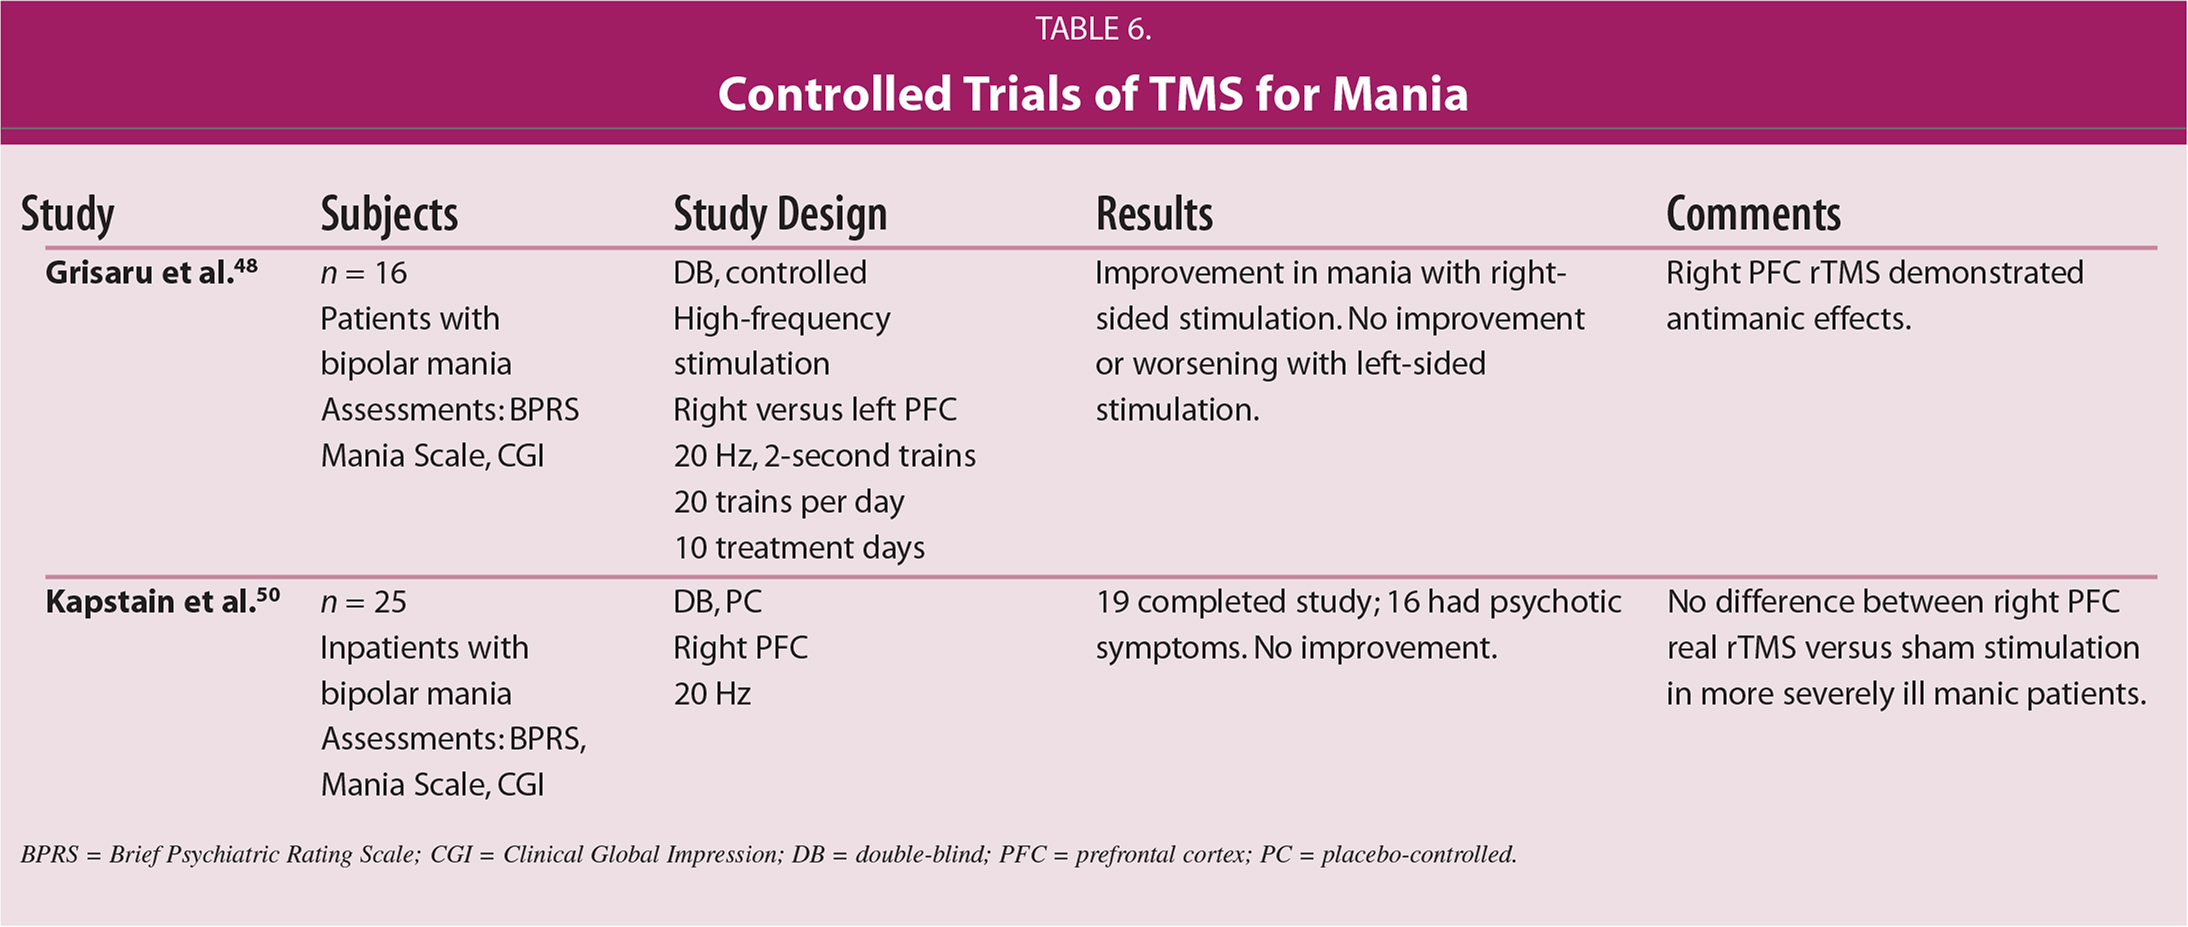 Controlled Trials of TMS for Mania